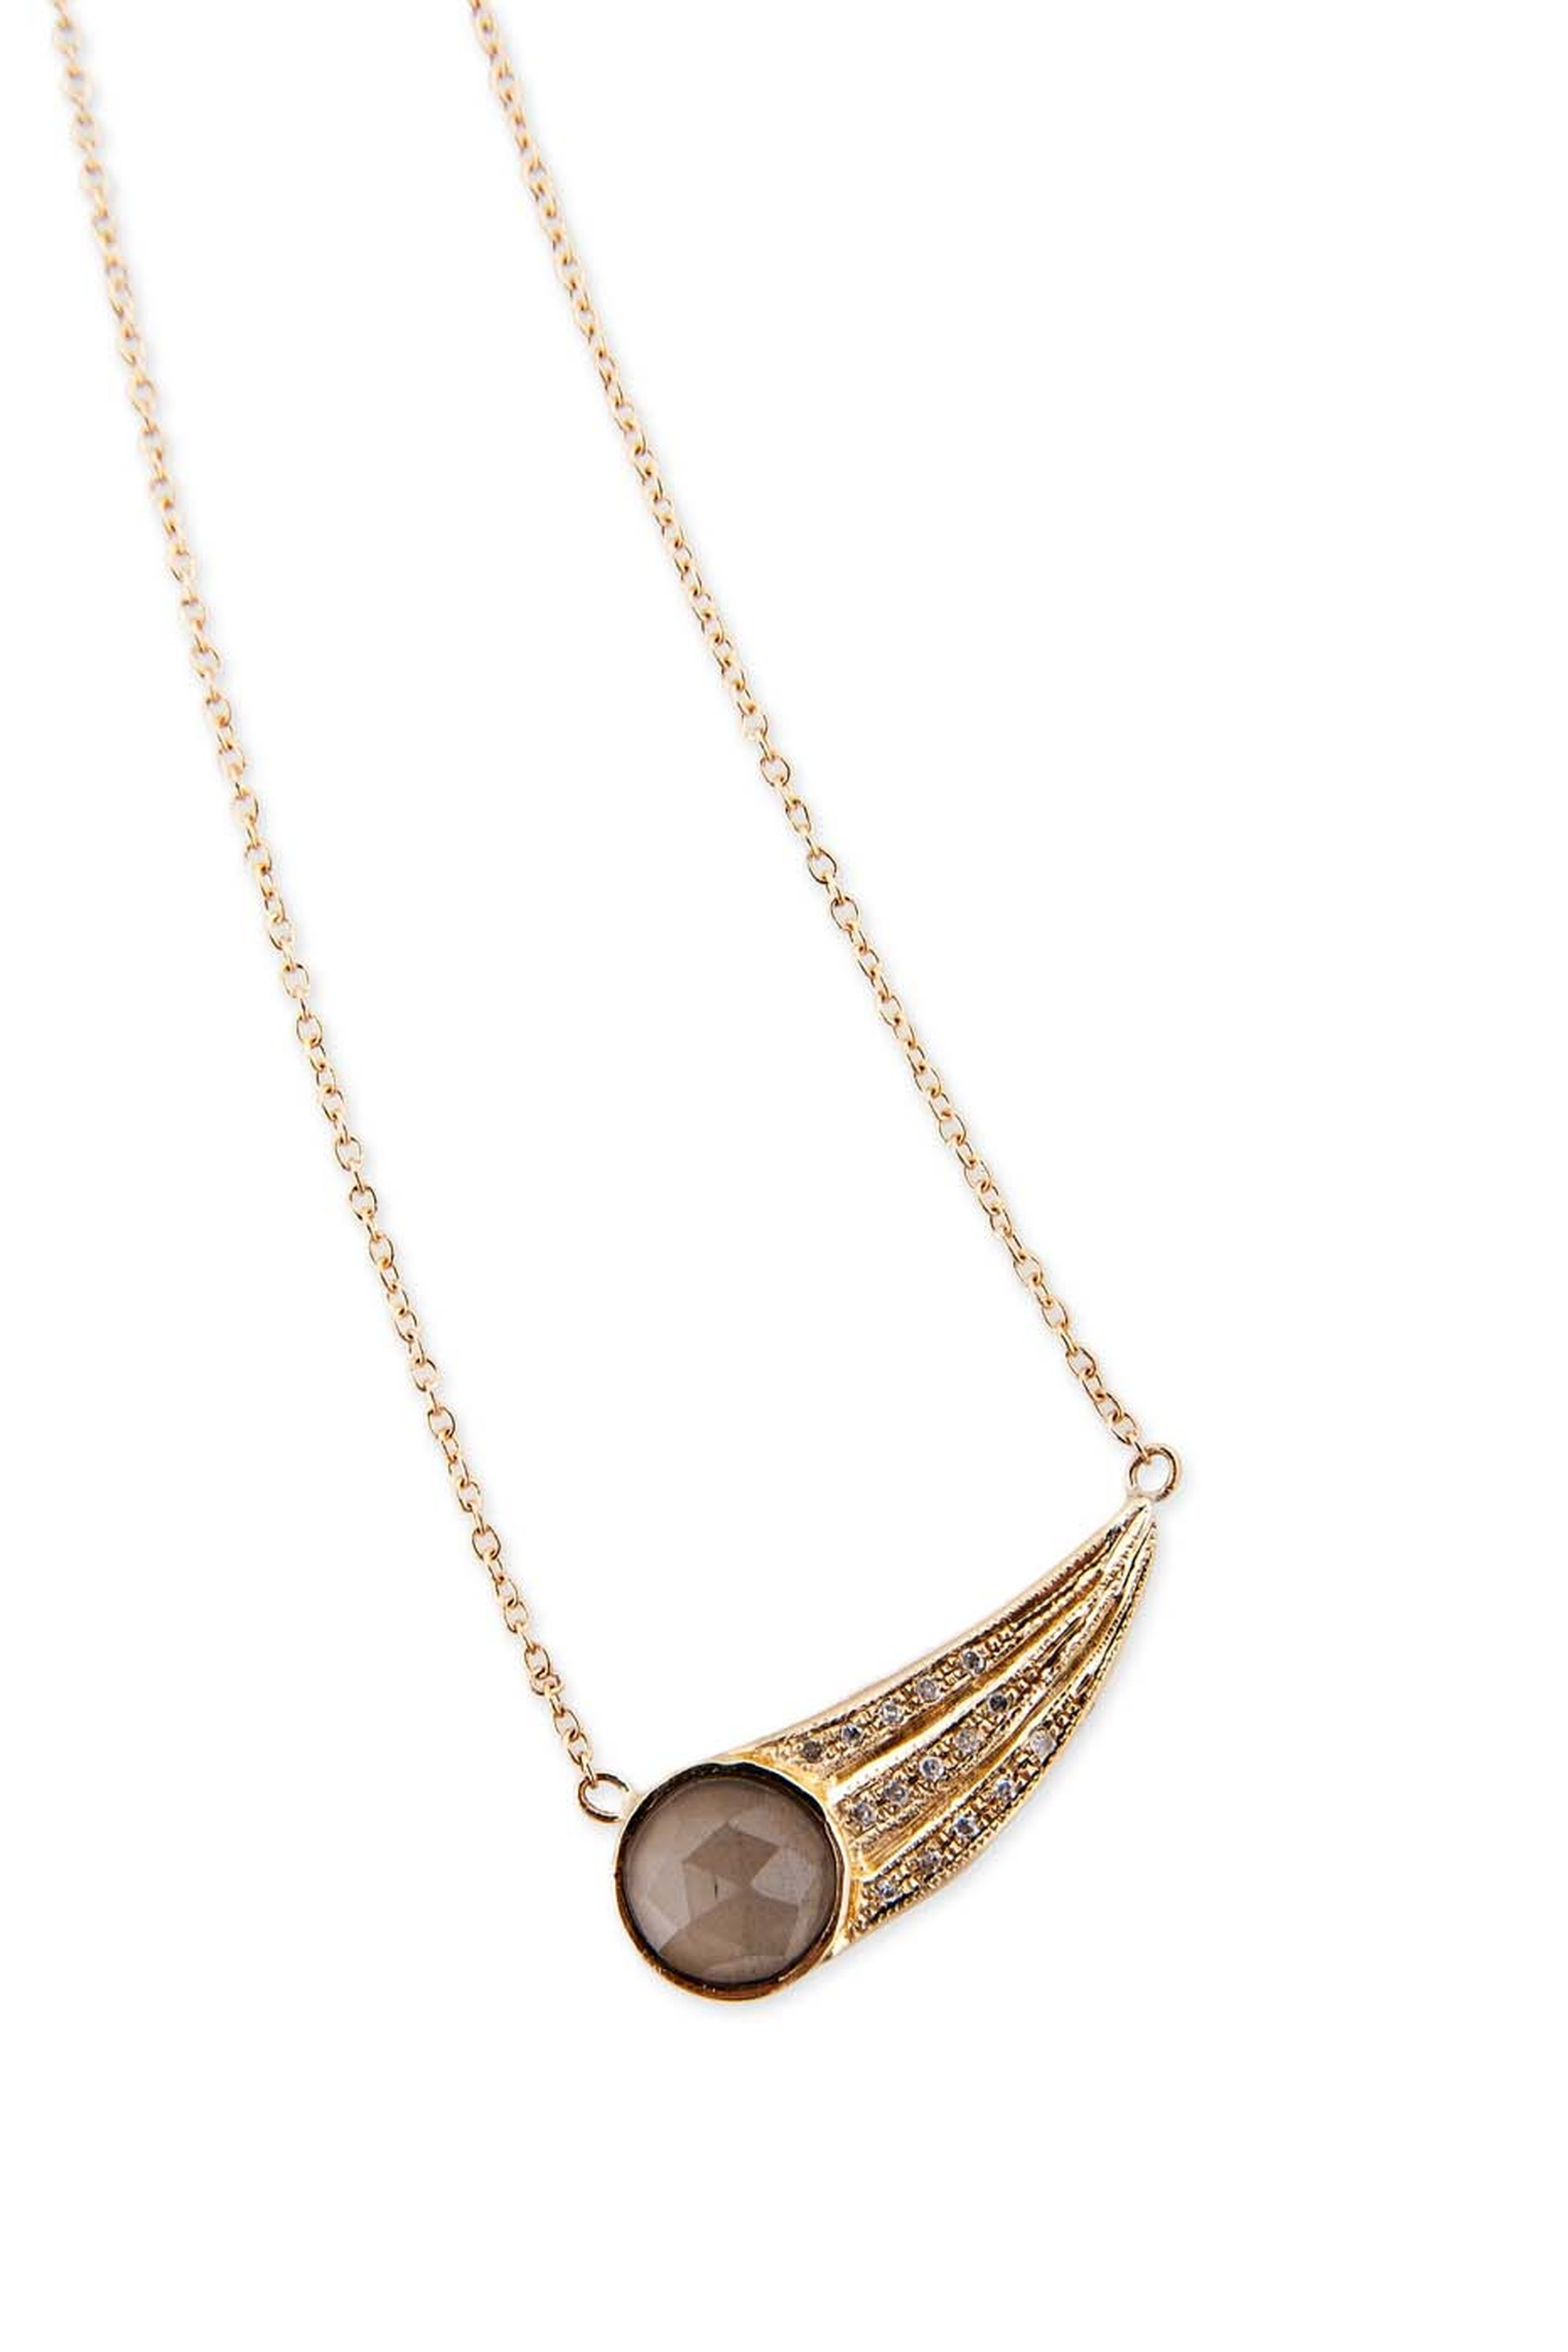 Jacquie Aiche yellow gold Rounded Wing necklace with pavé diamonds and labradorite.